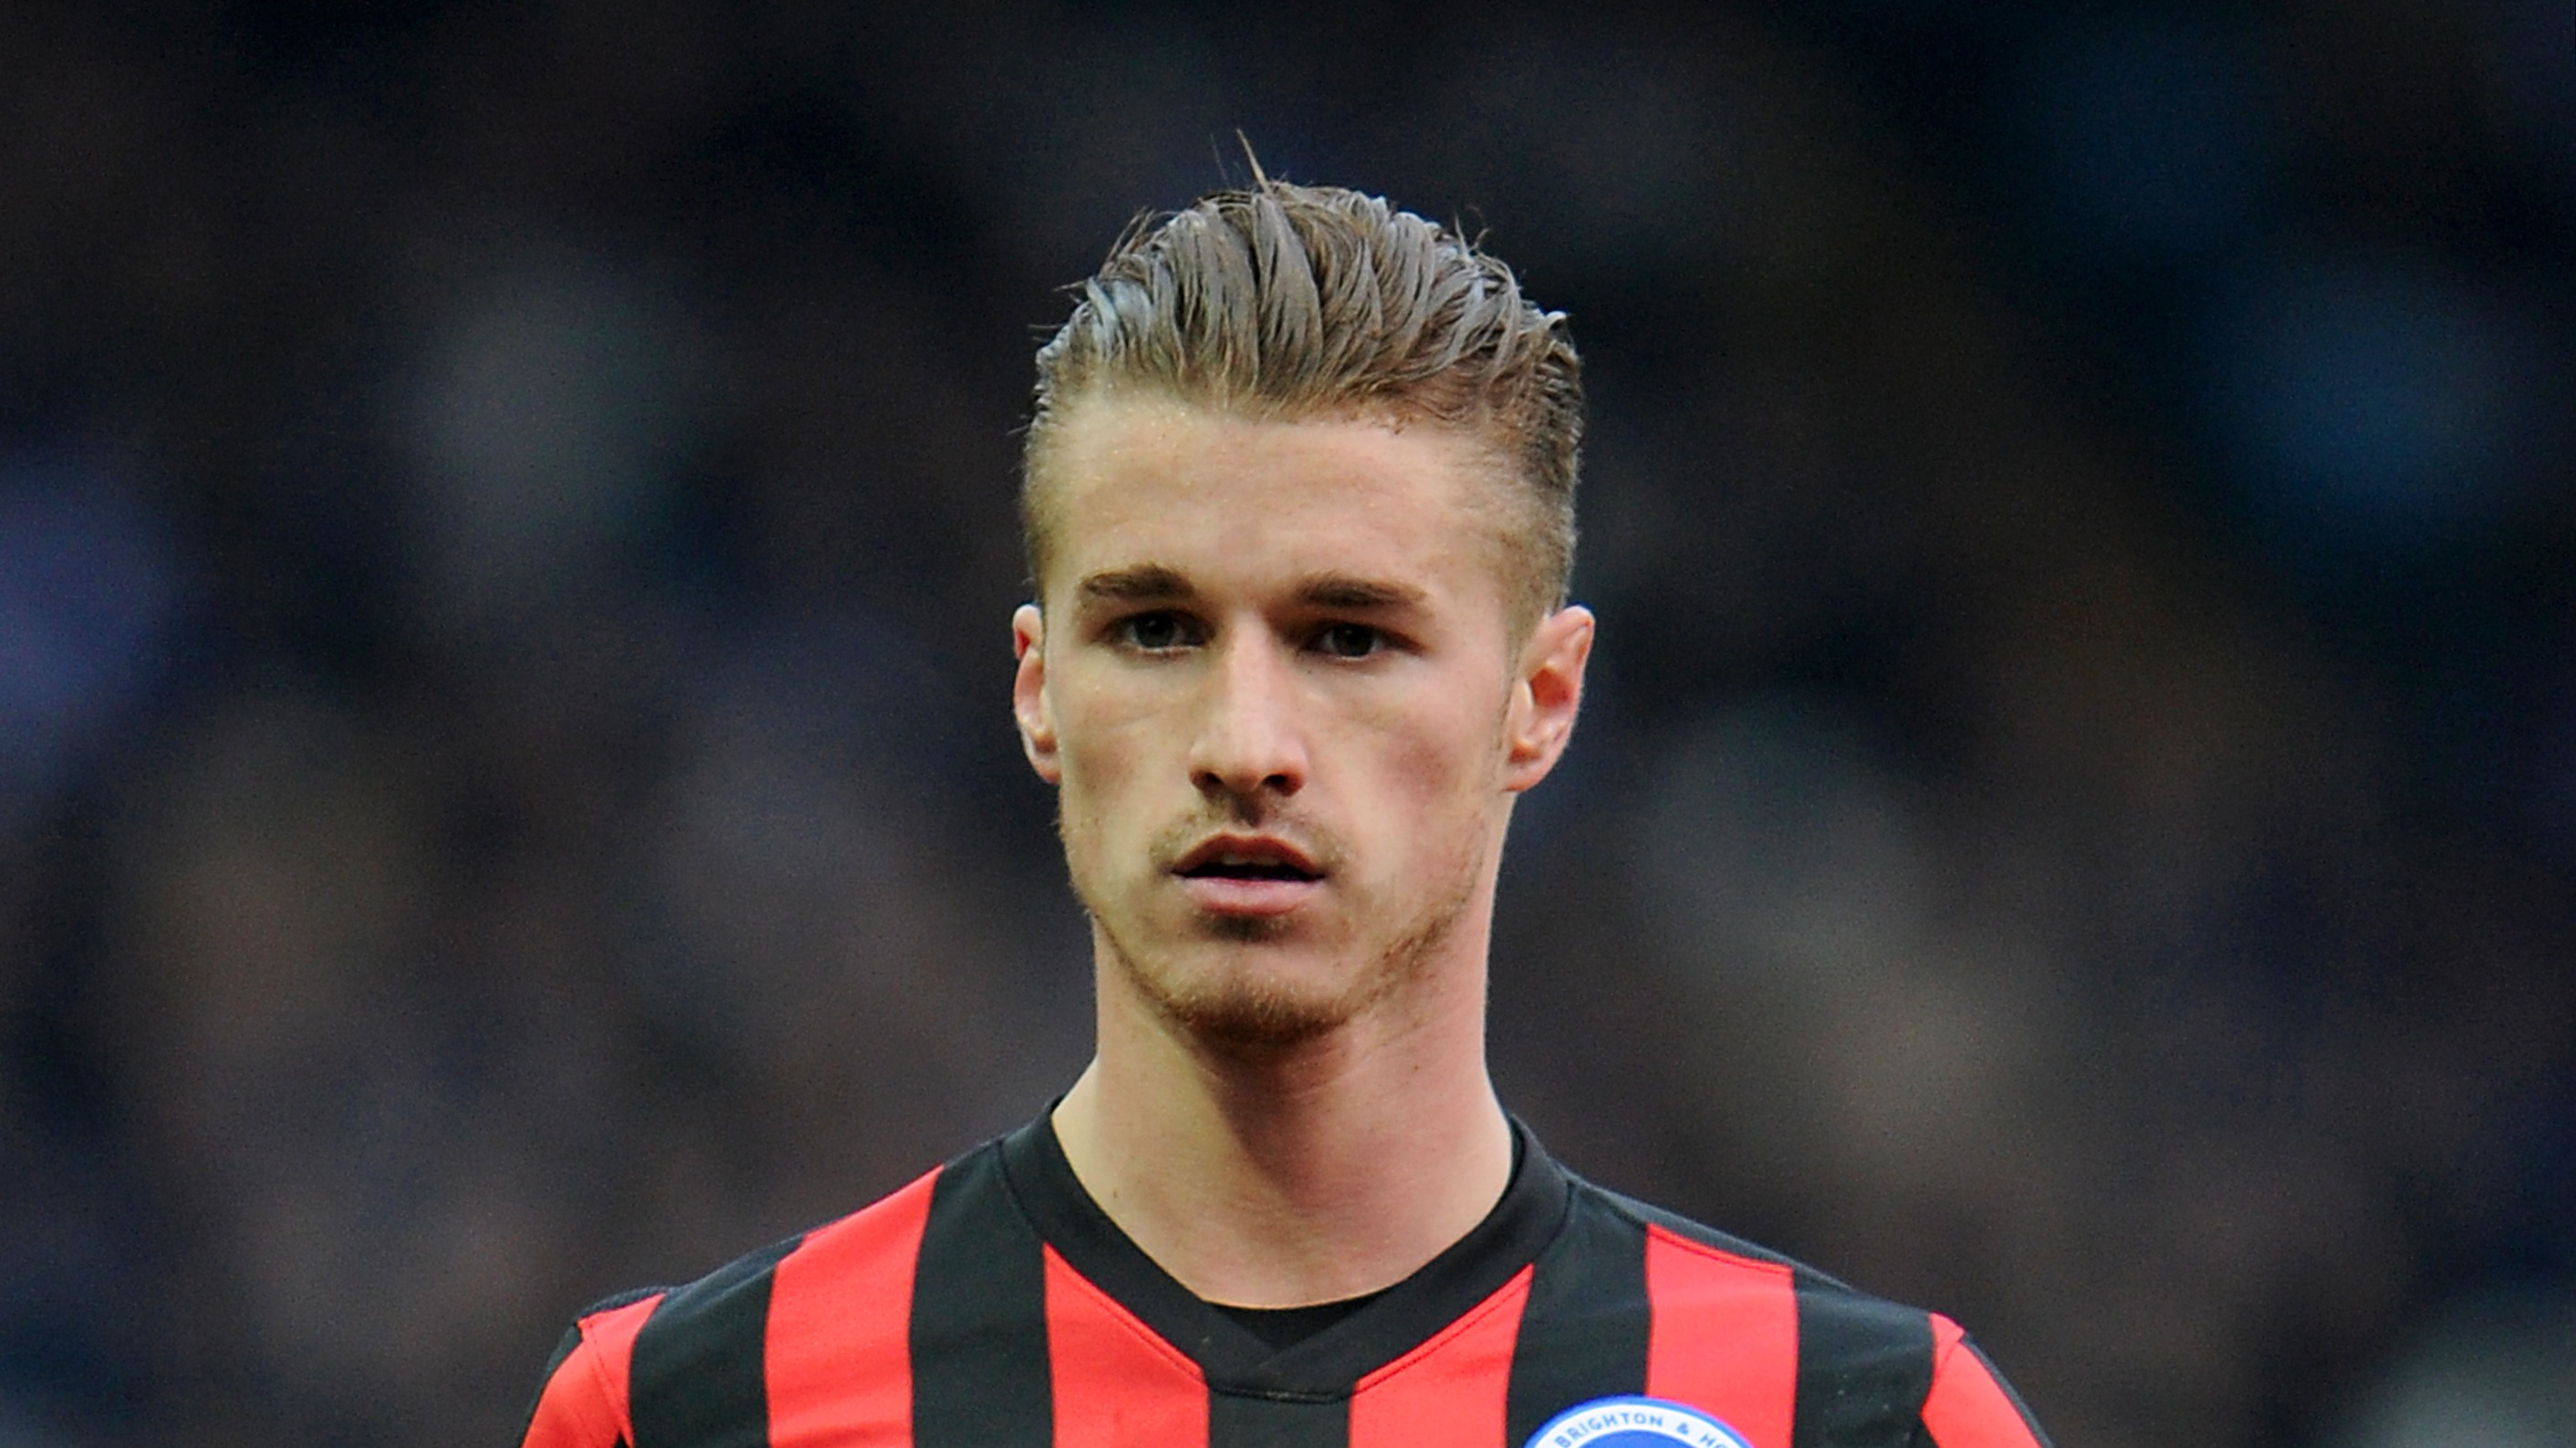 Late deals bournemouth